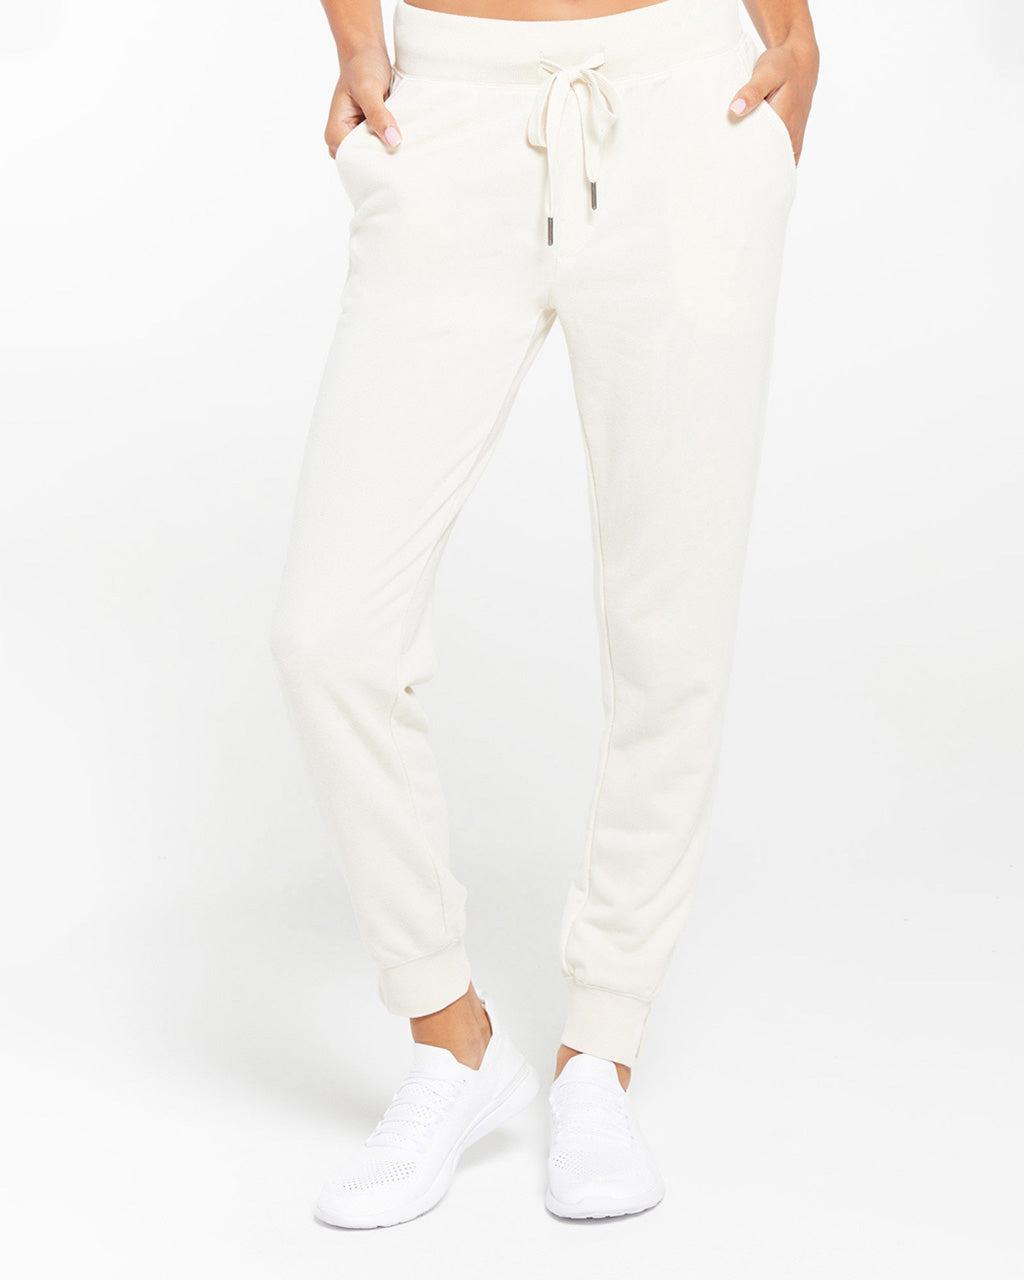 model wearing white jogger sweatpants with white sneakers